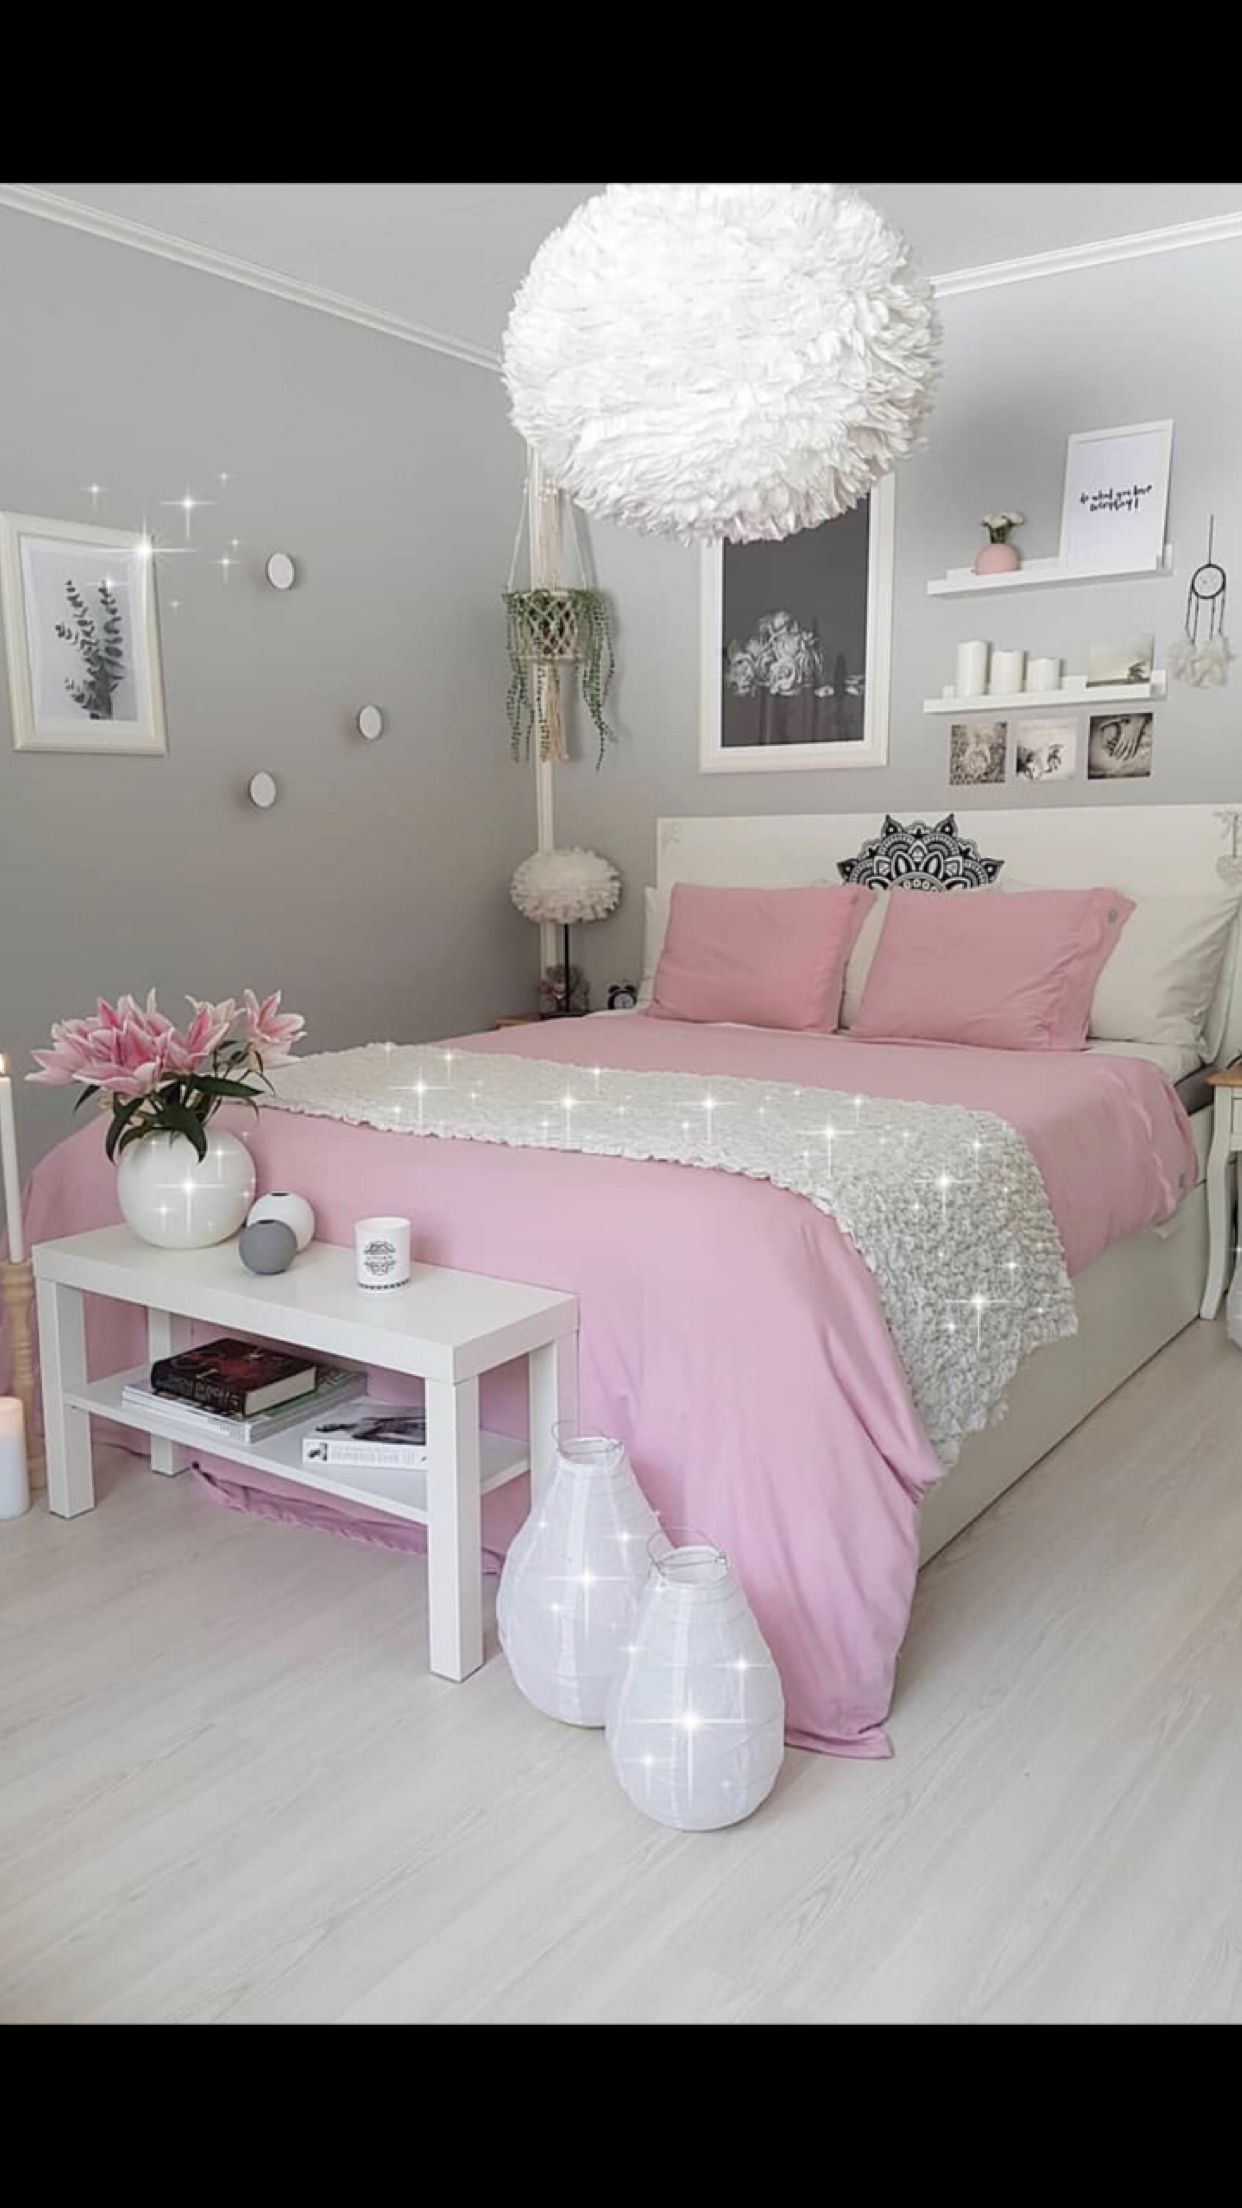 Chambre Princesse Moderne A Little Princess Sleeps Here Chambre Pinterest Bedroom